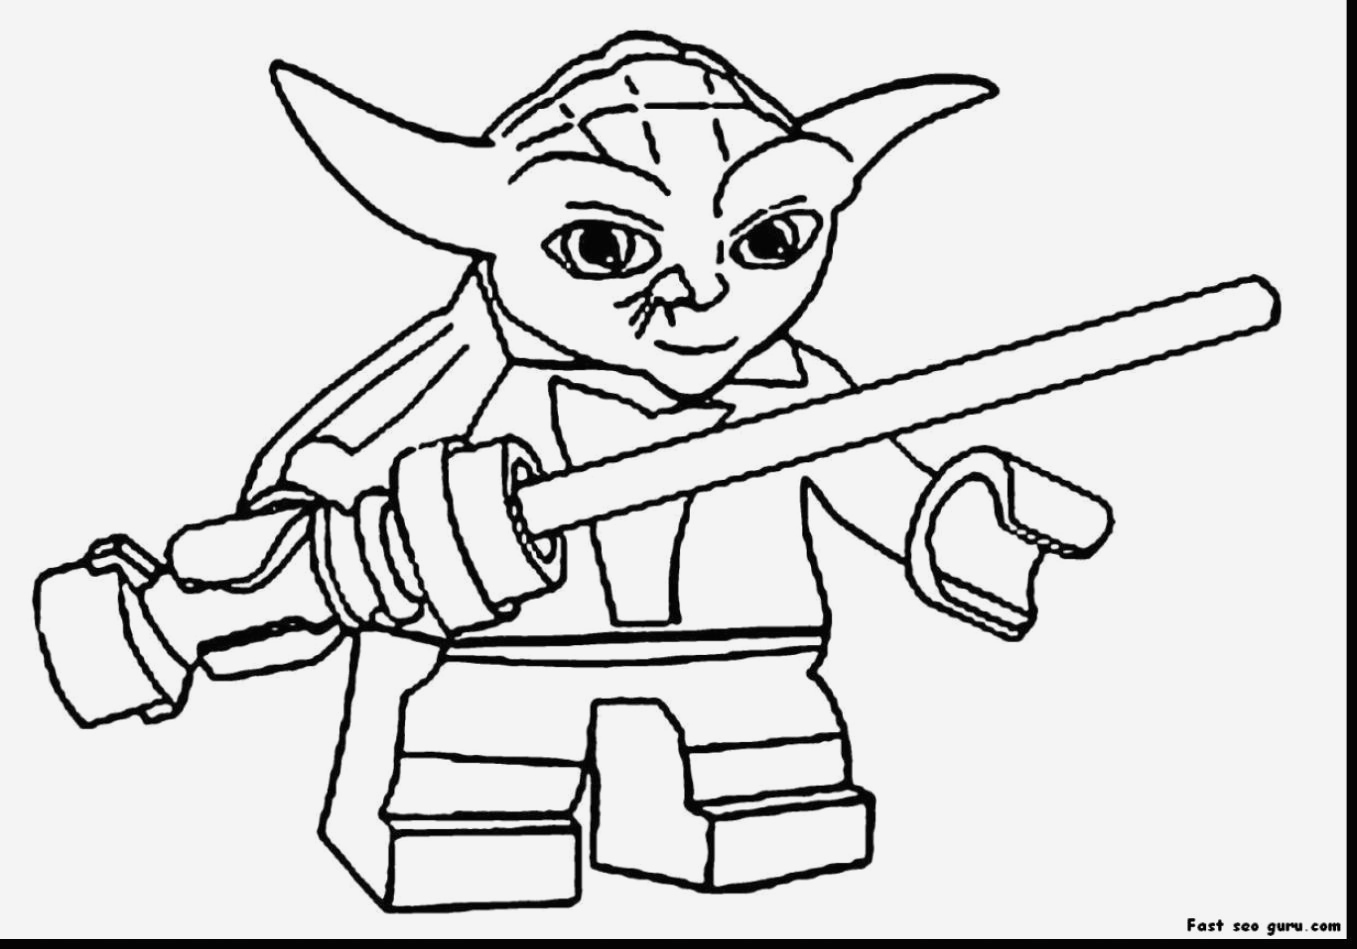 Coloriage Lego Star Wars Unique Star Wars Lego Drawing Of Coloriage Lego Star Wars